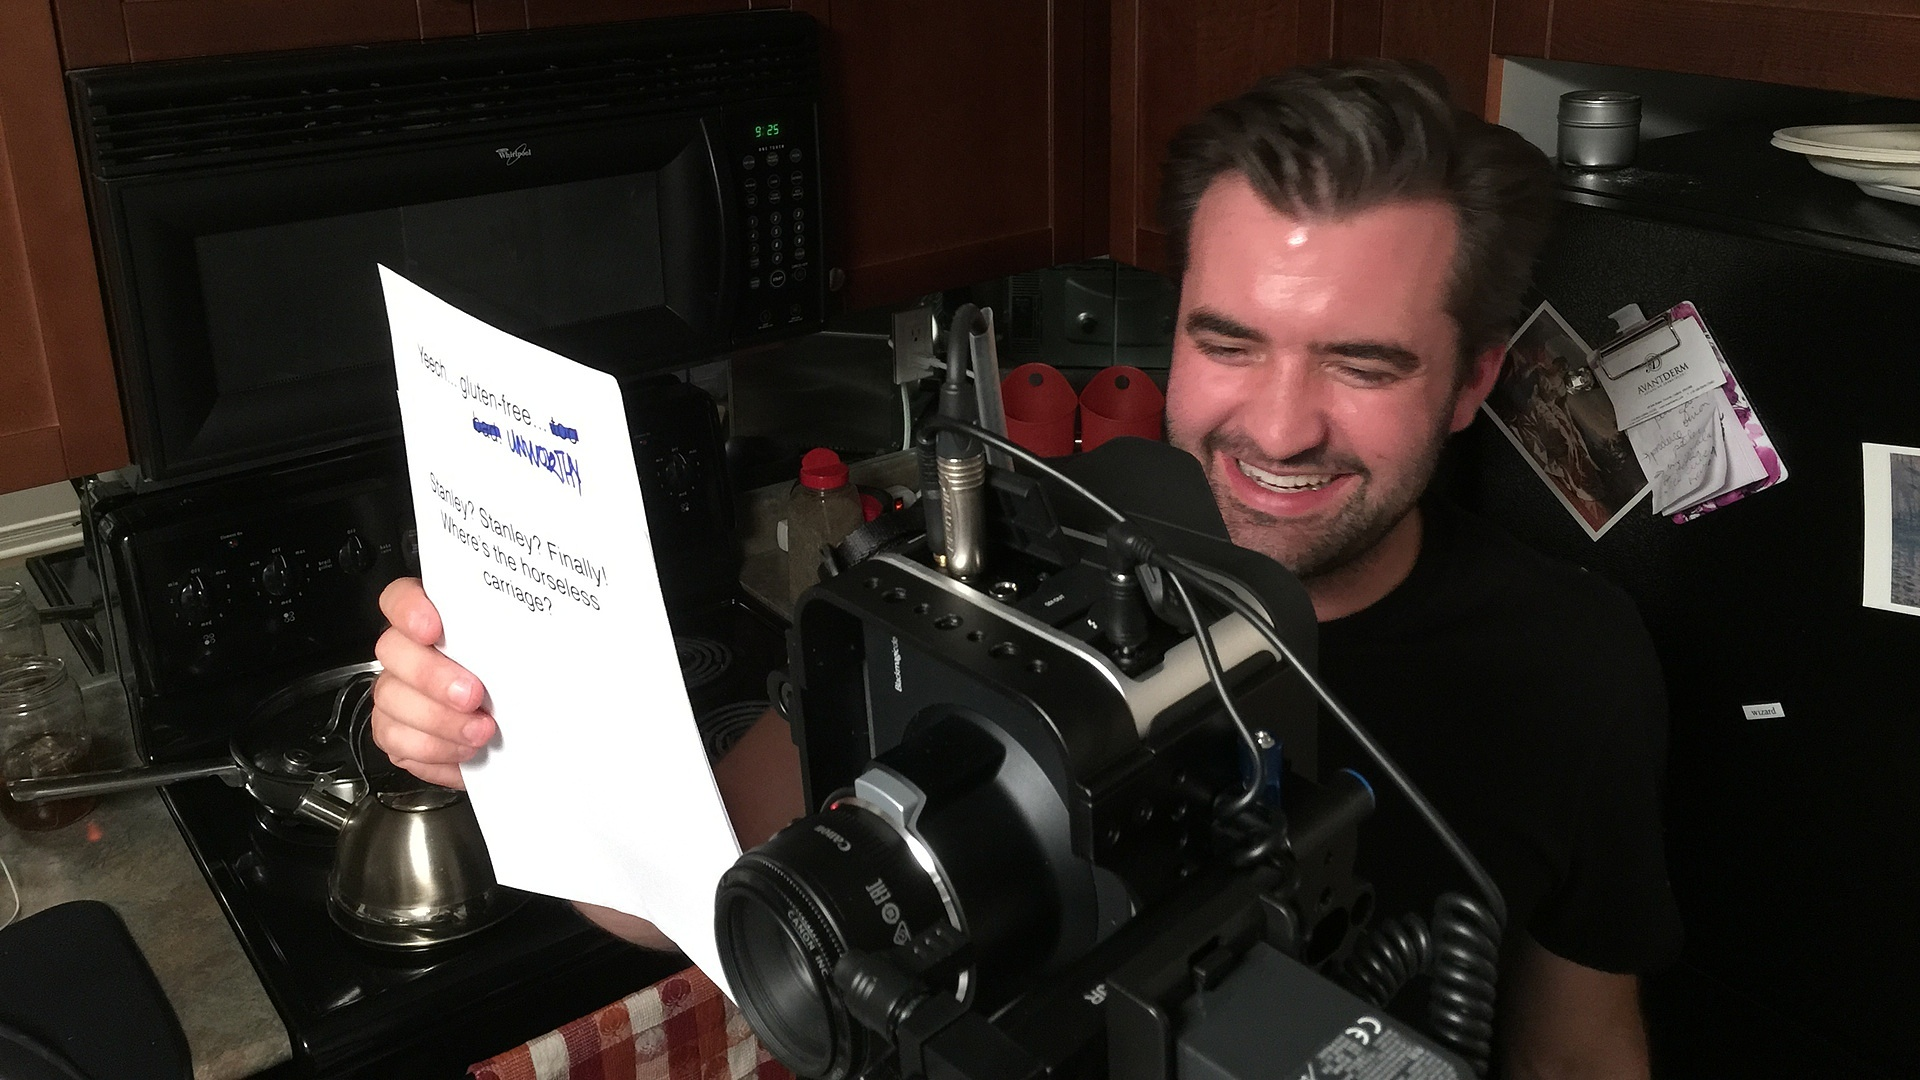 Andrew the High-Tech Teleprompter